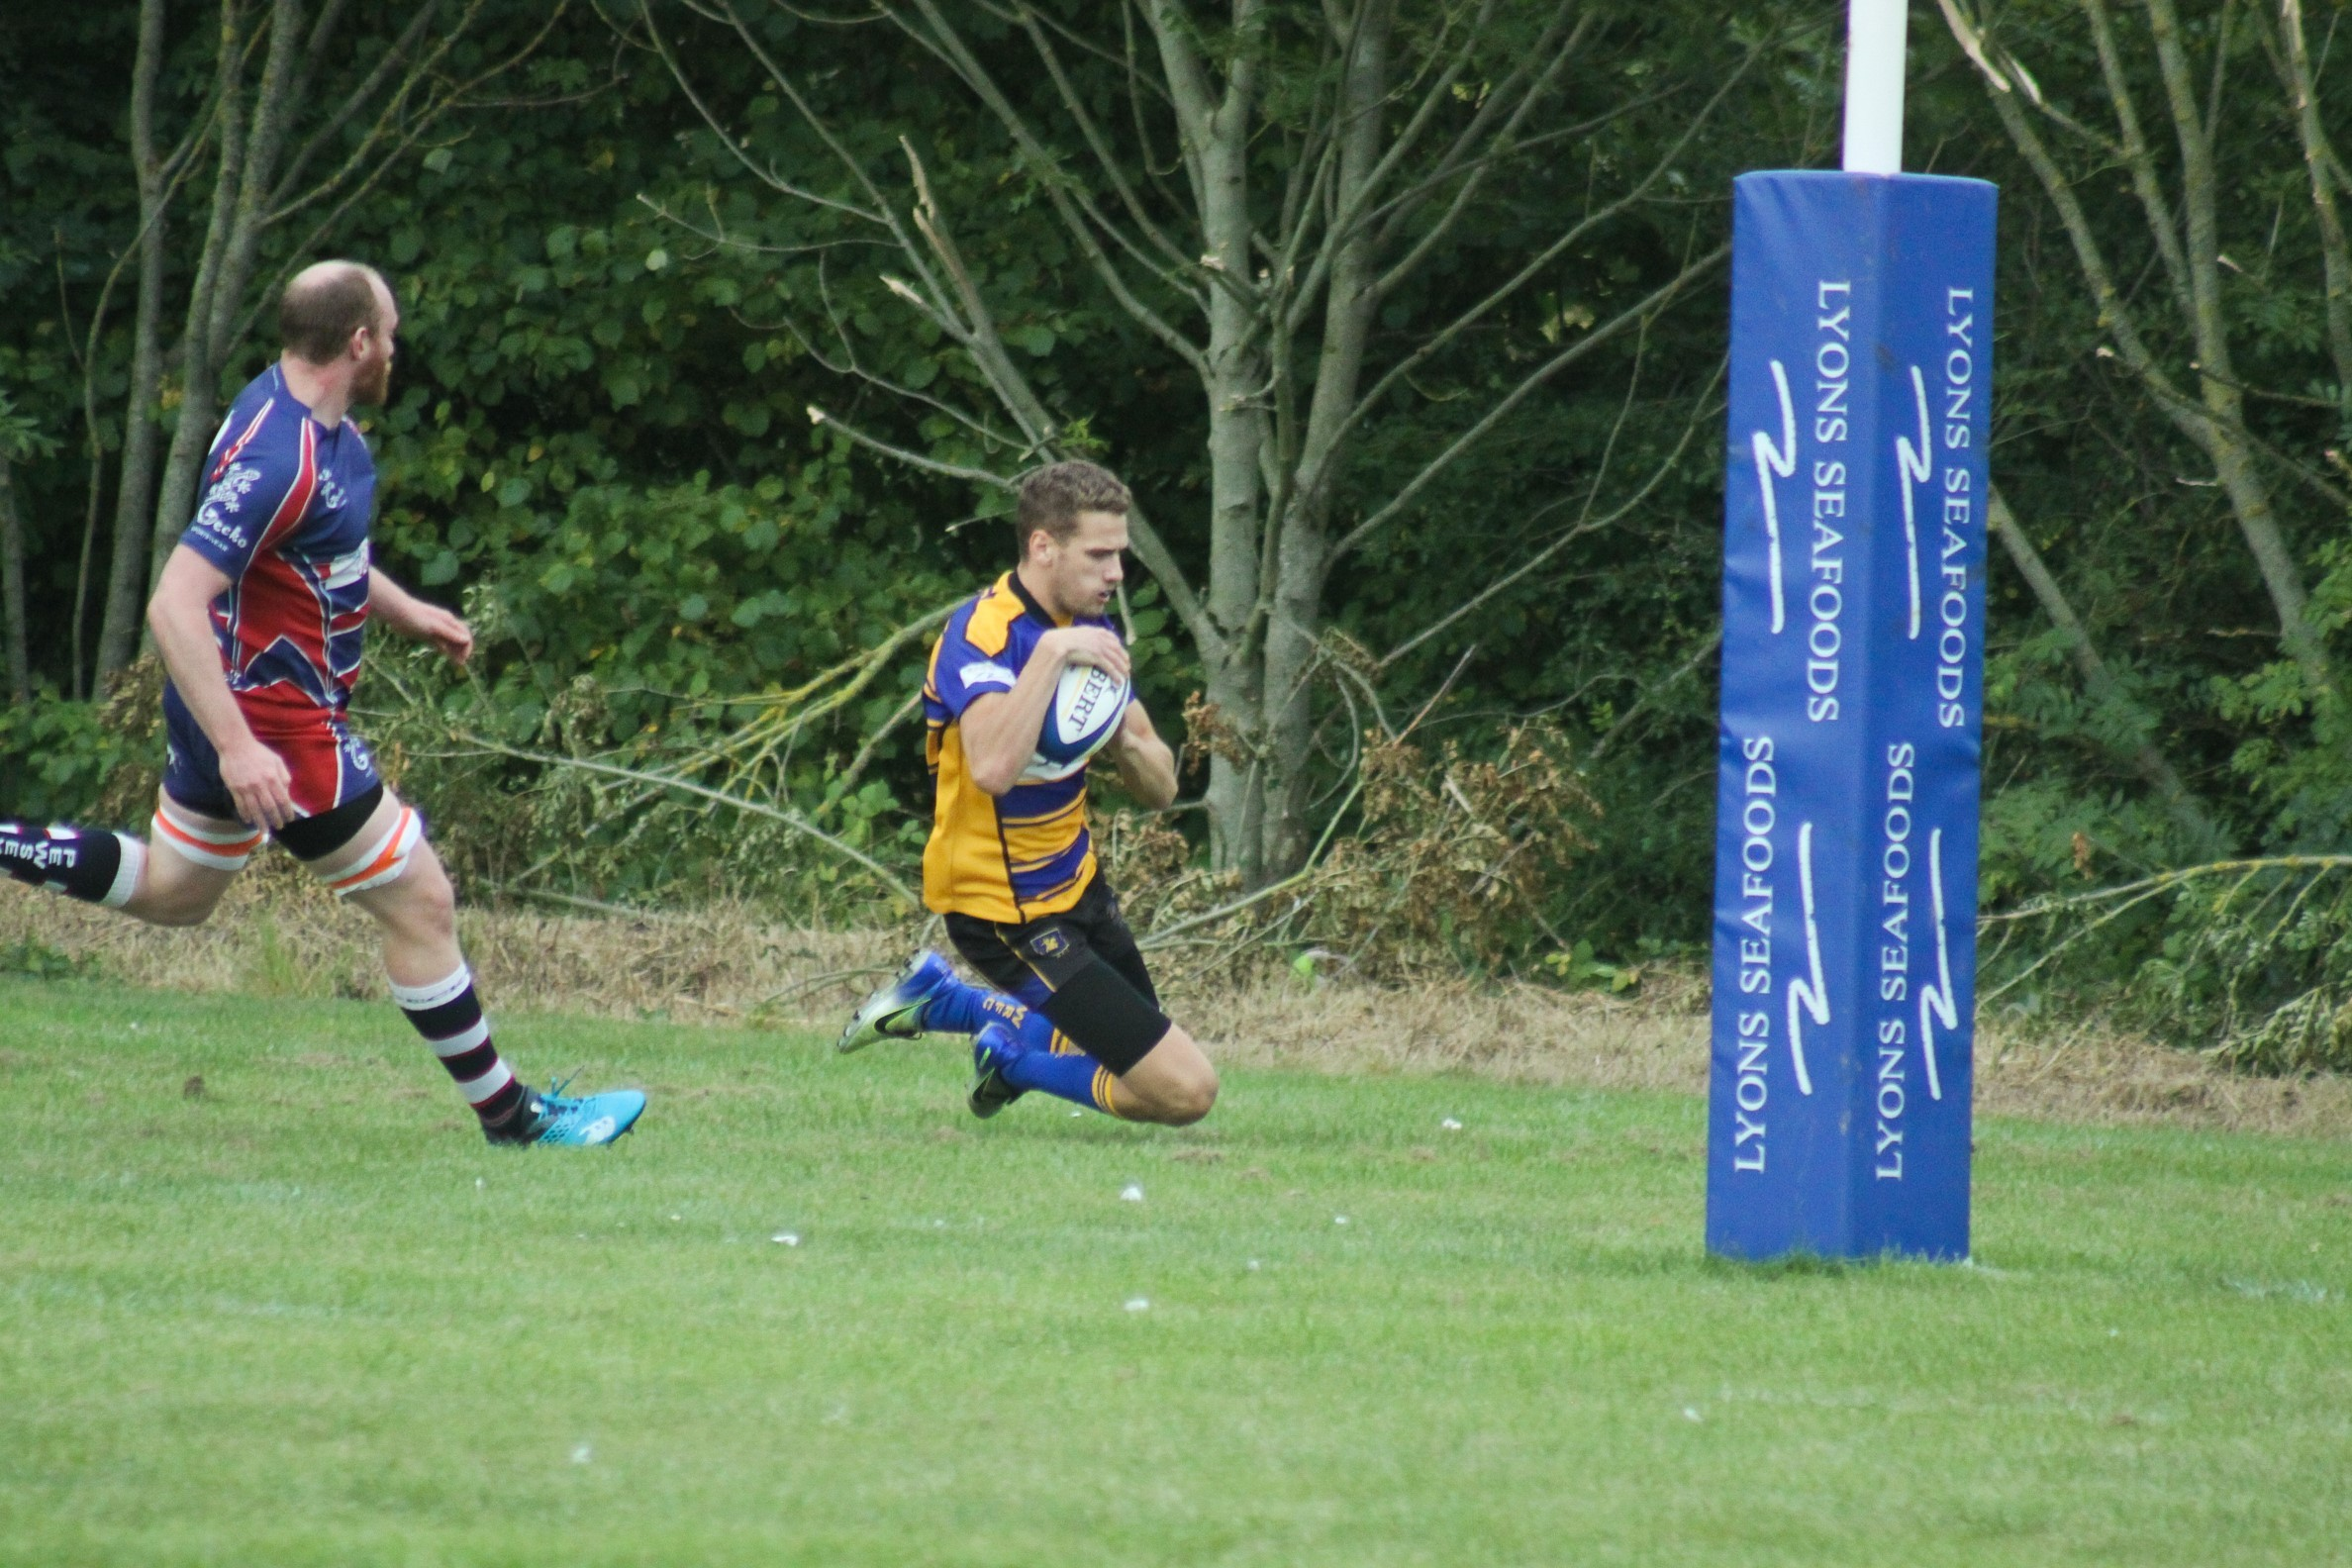 Tom Evans was a try scorer for Warminster Picture: DAN DUNNE